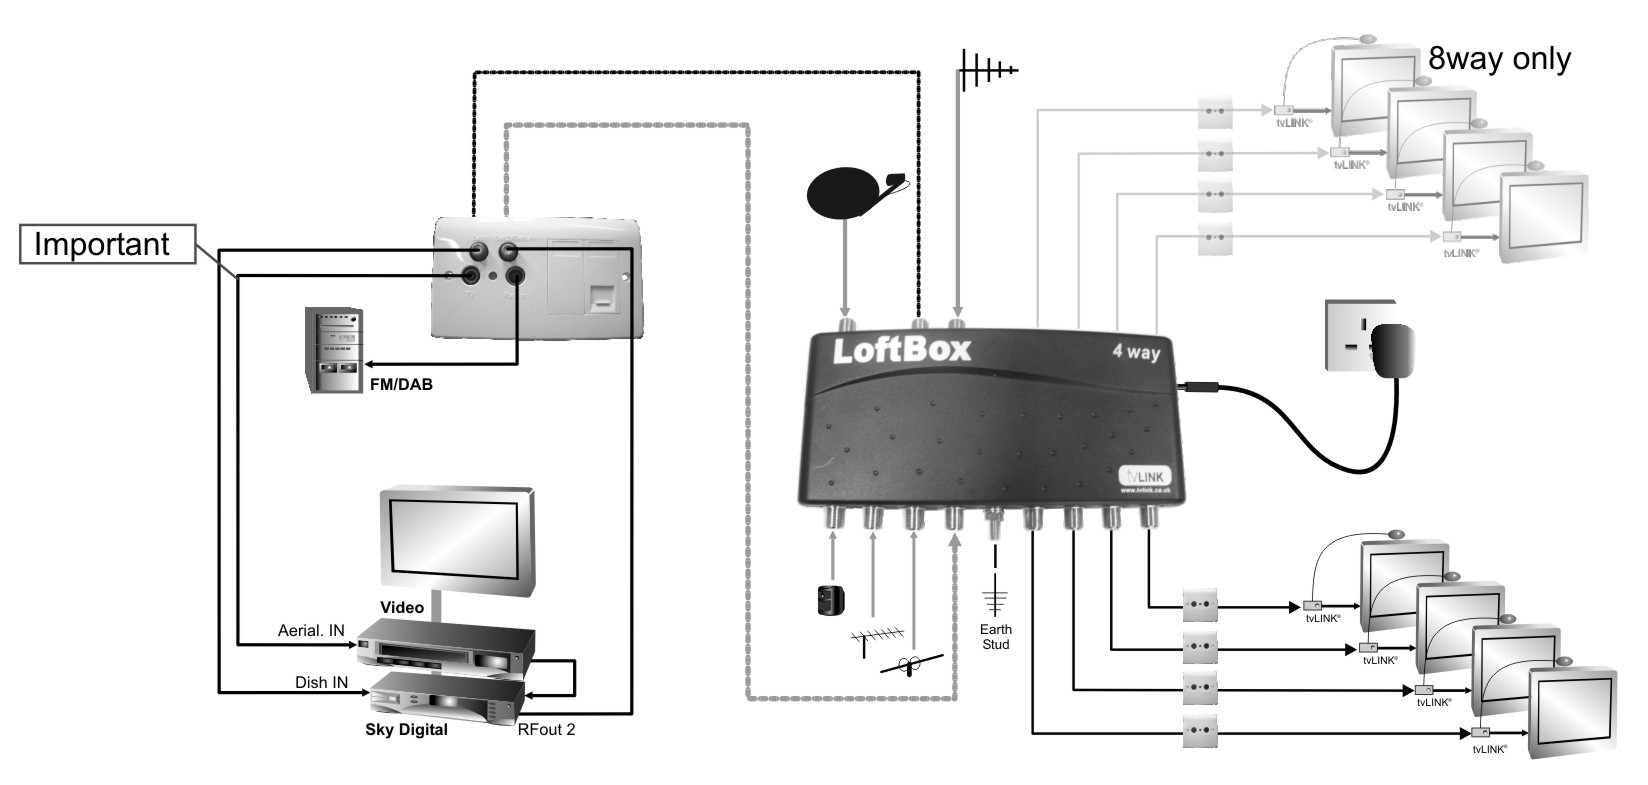 Global Loftbox